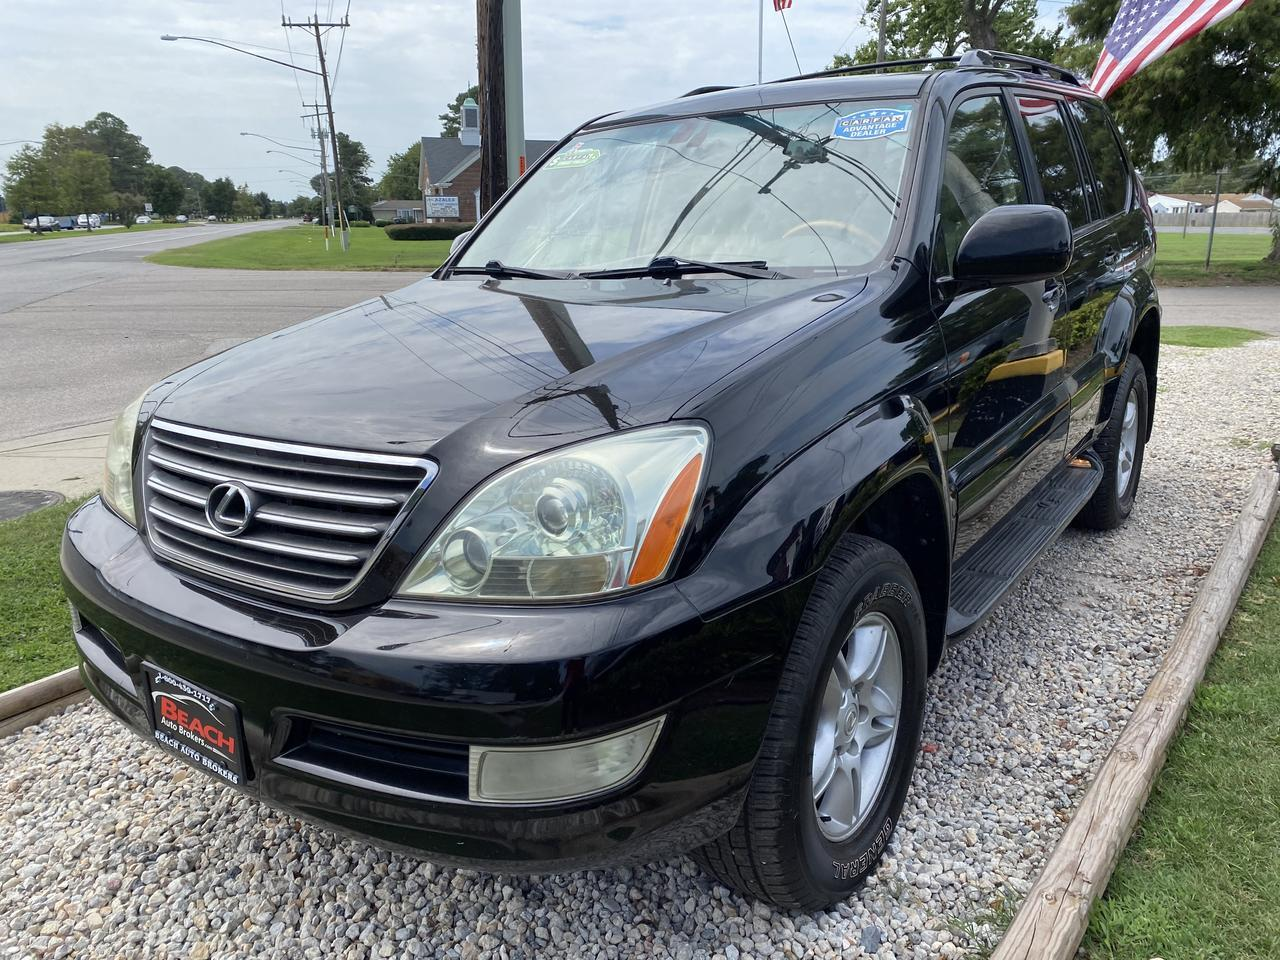 2003 LEXUS GX470 WHOLESALE TO THE PUBLIC, LEATHER, NAV, HEATED SEATS, DVD PLAYER, TOW PKG! Norfolk VA